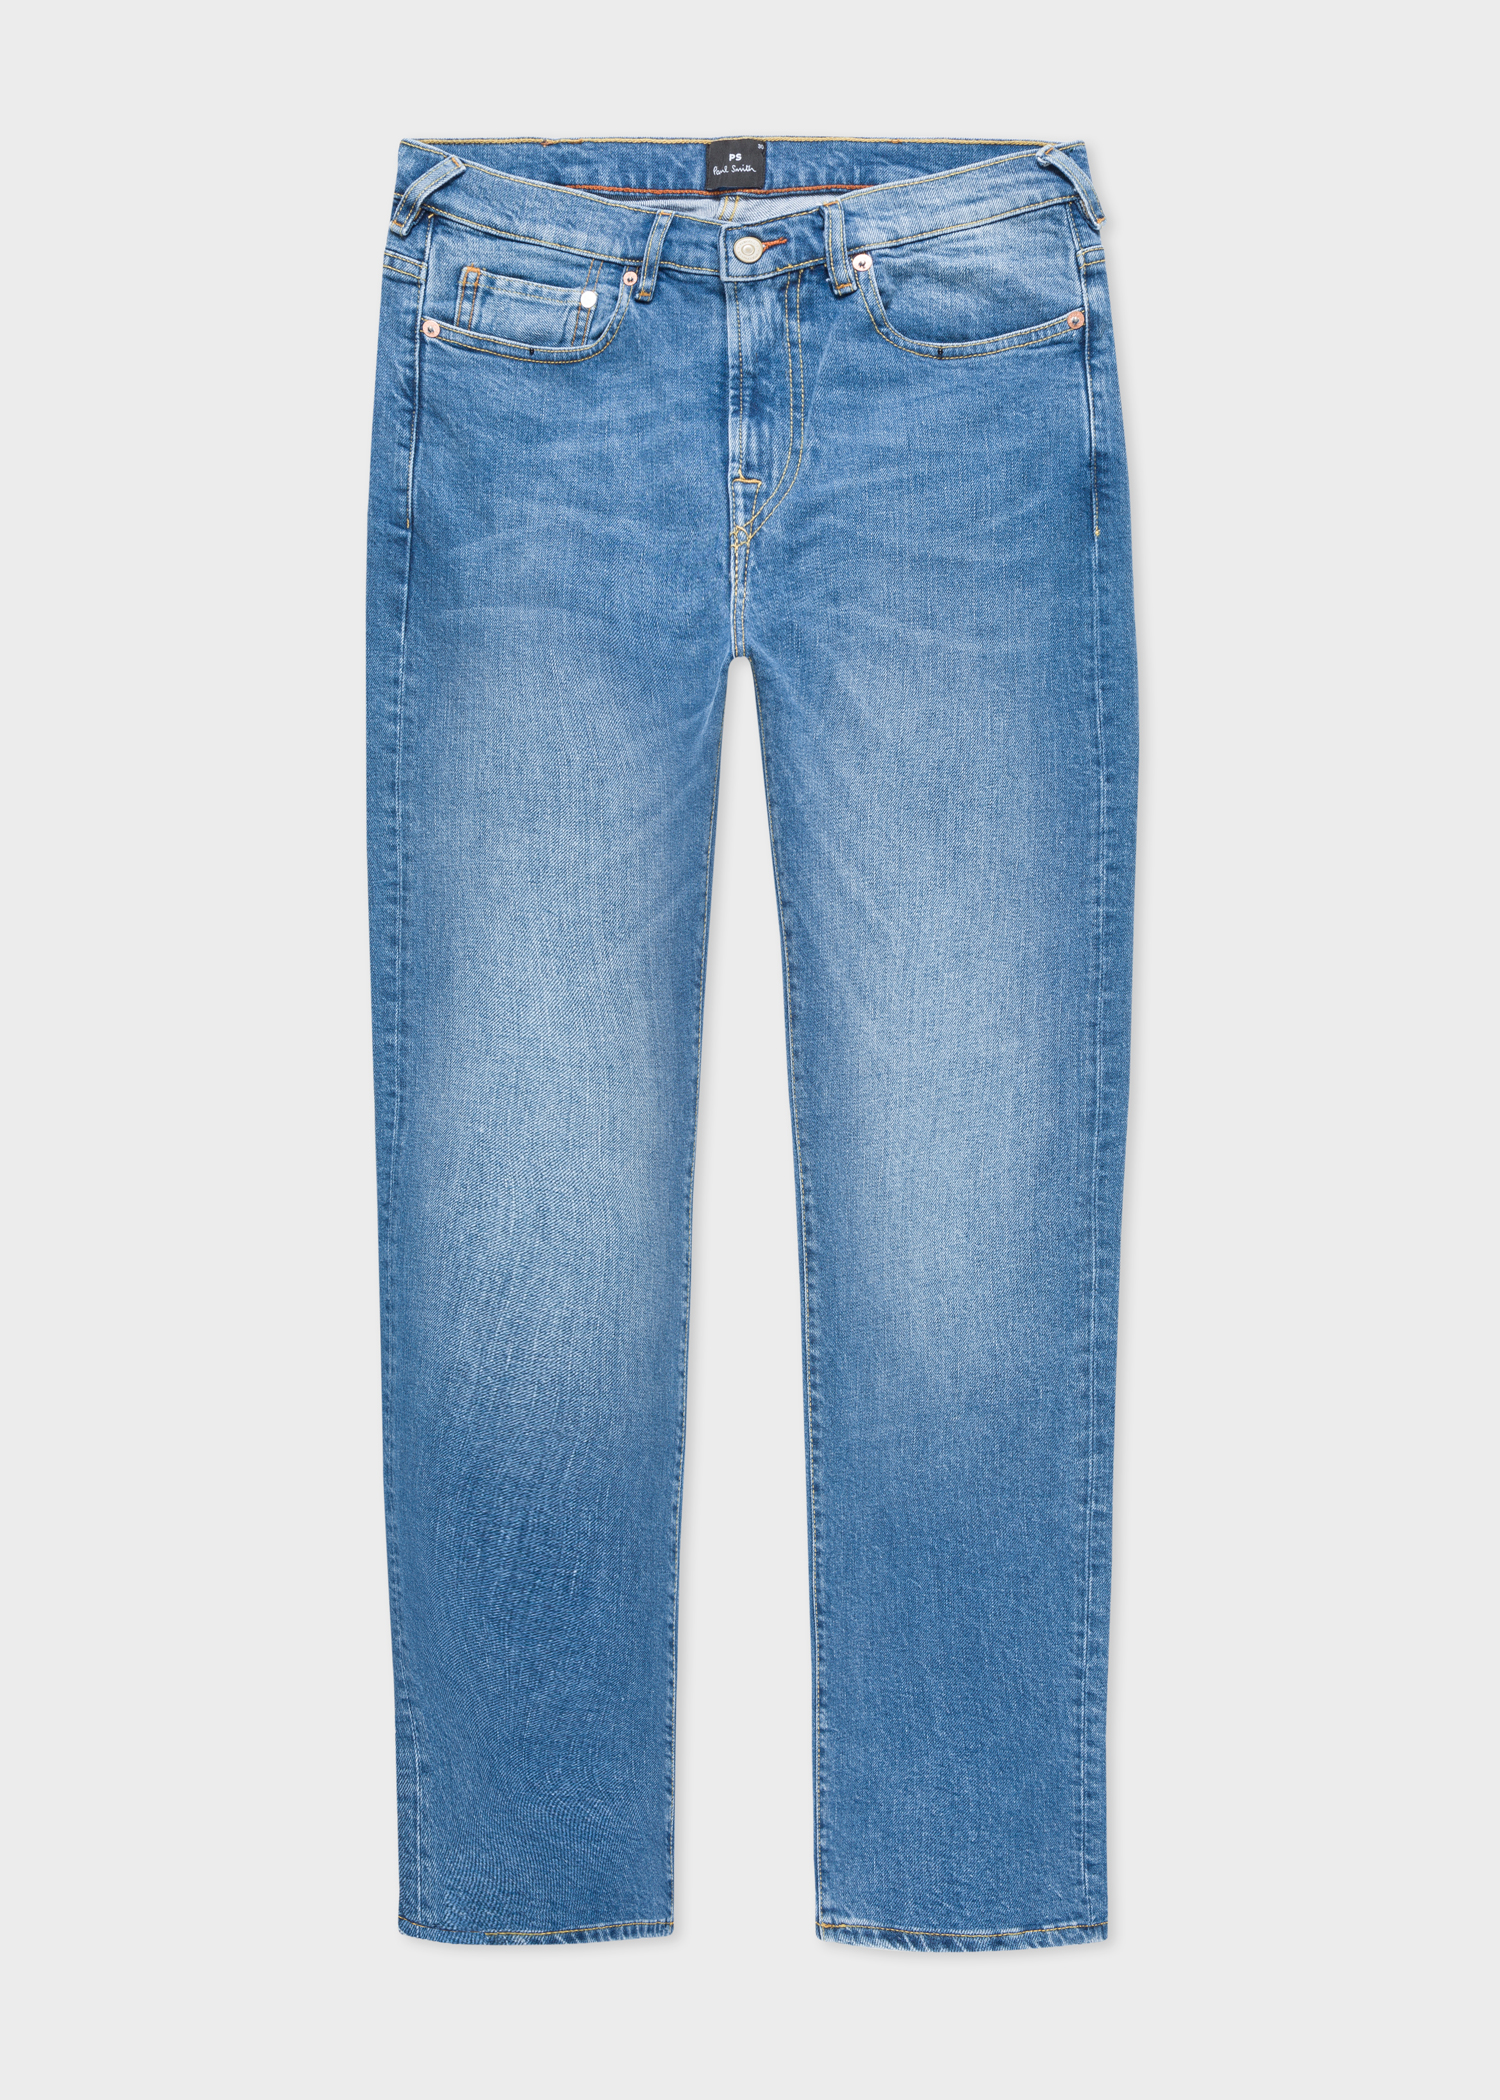 0c7ef306 Front view - Men's Slim-Fit Vintage Wash Stretch-Denim Jeans Paul Smith